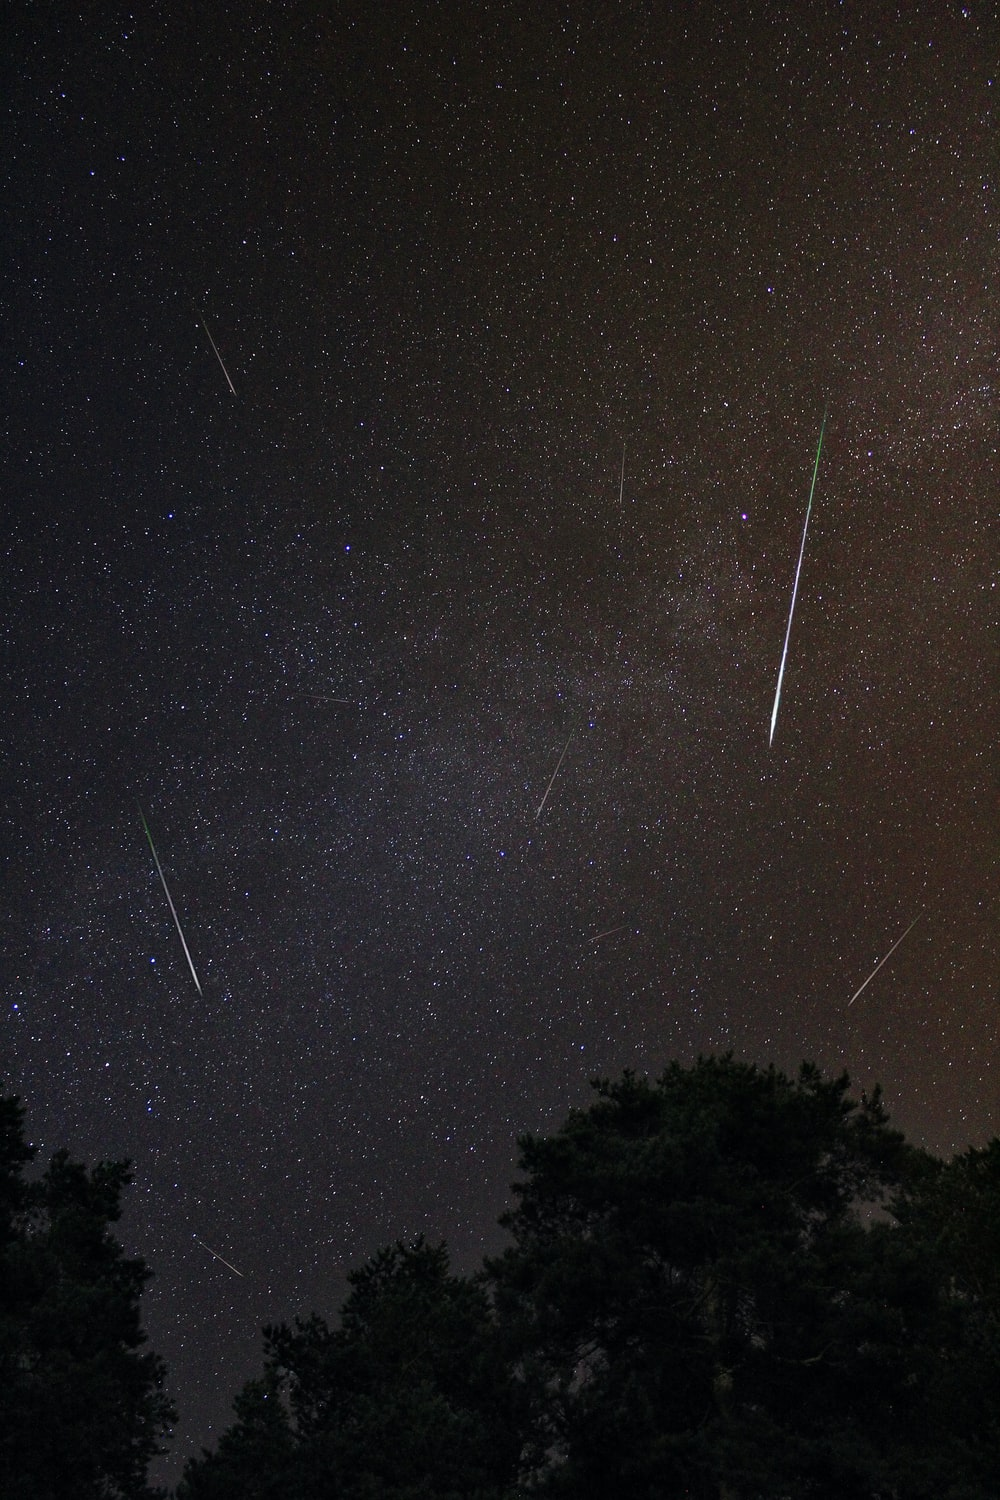 meteor shower on sky during nighttime